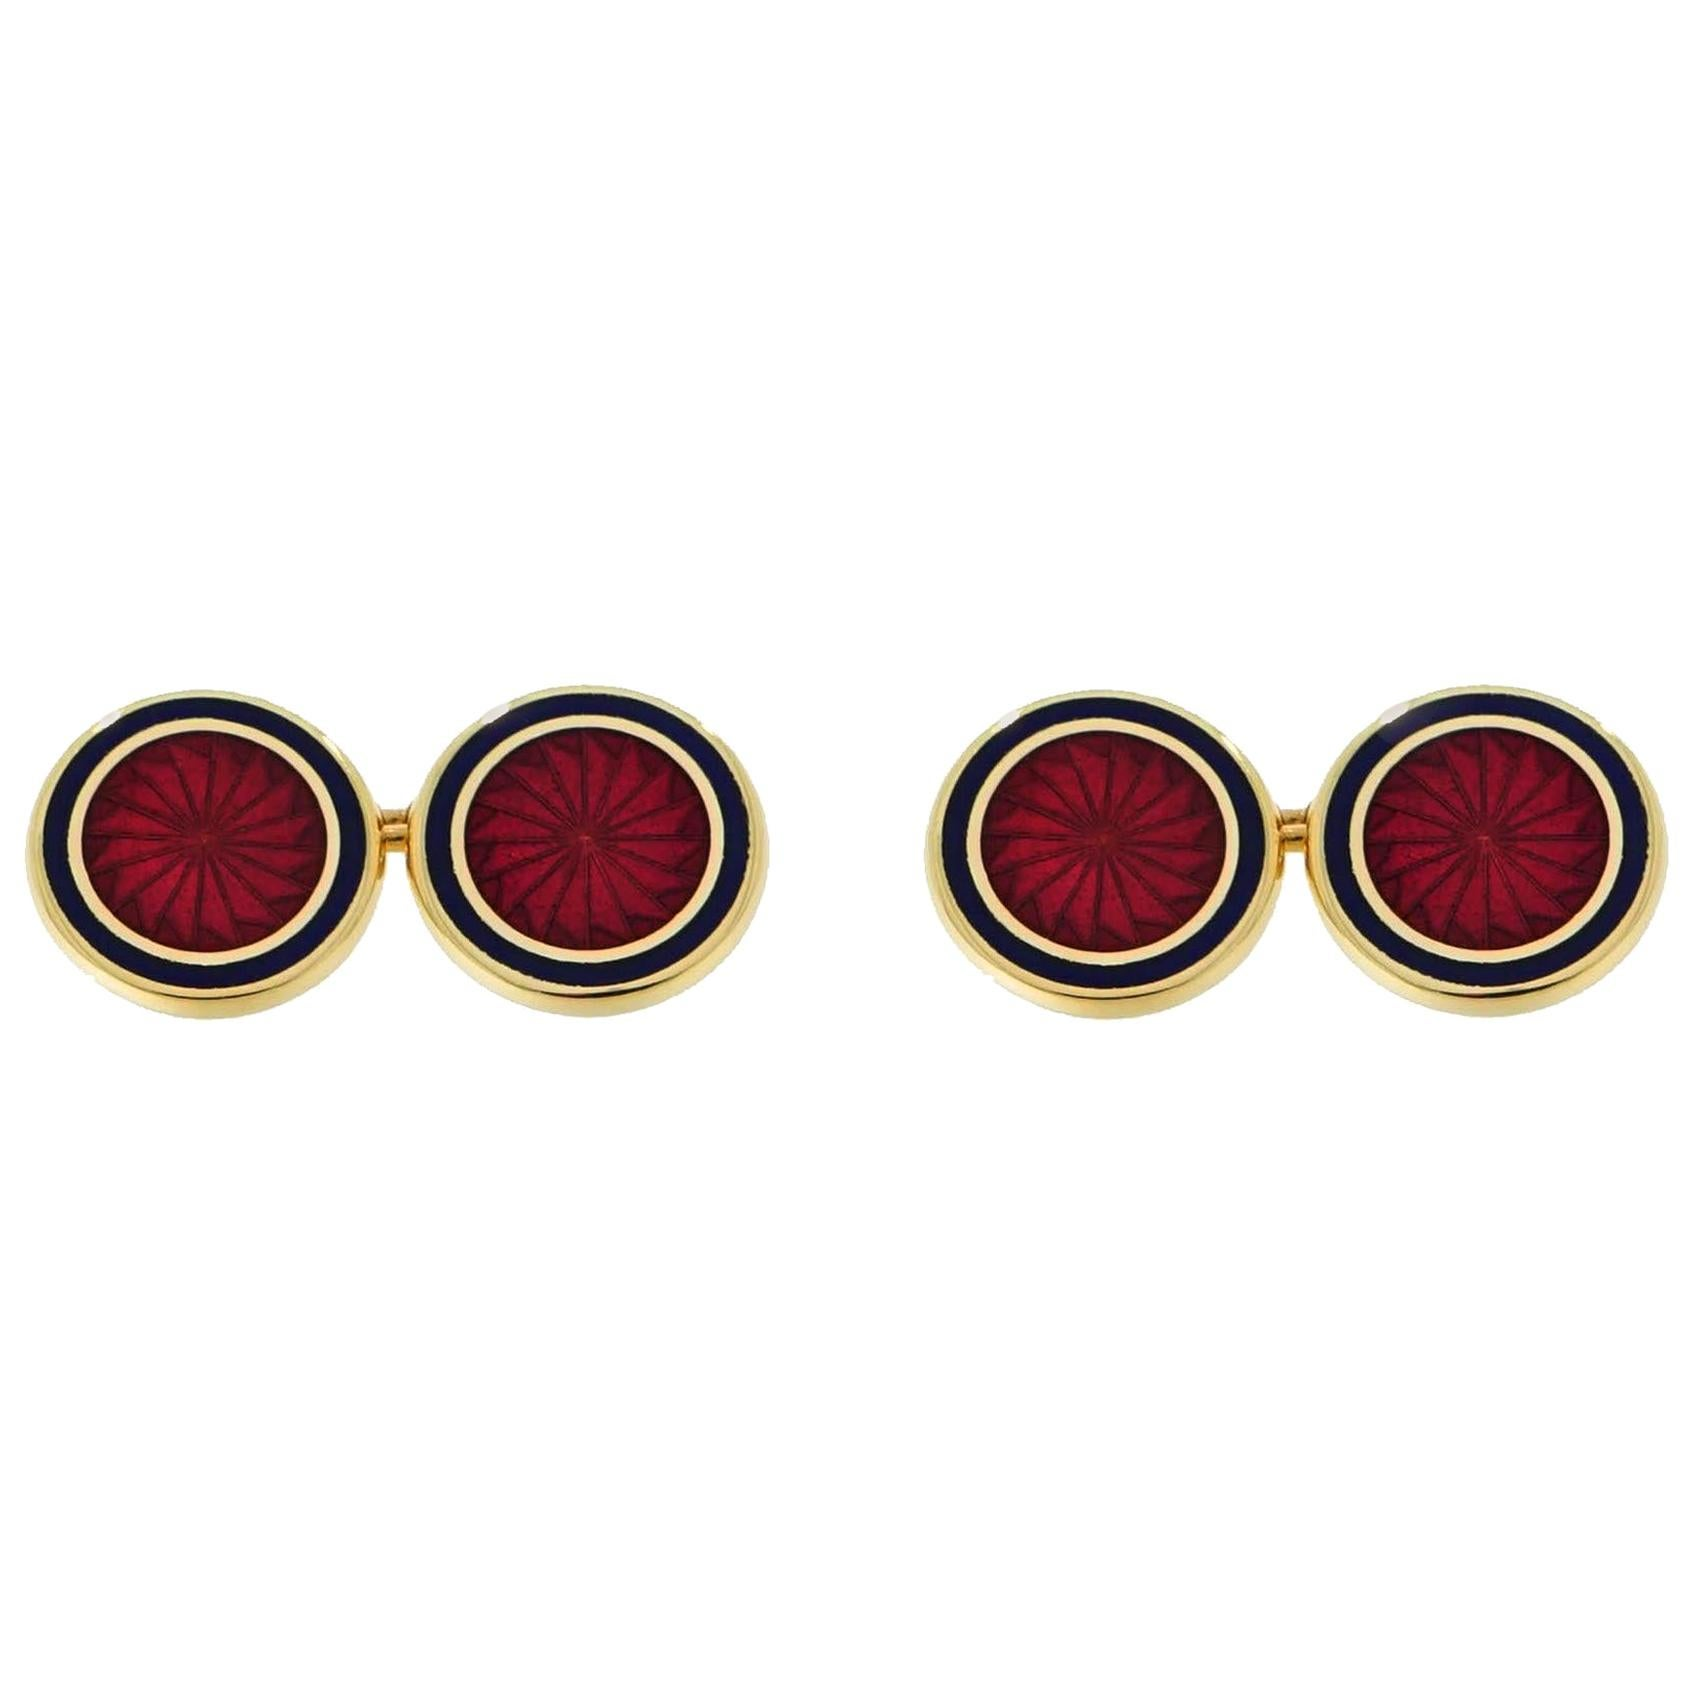 Brixton and Gill Double-Sided Yellow Gold Enamel Cufflinks